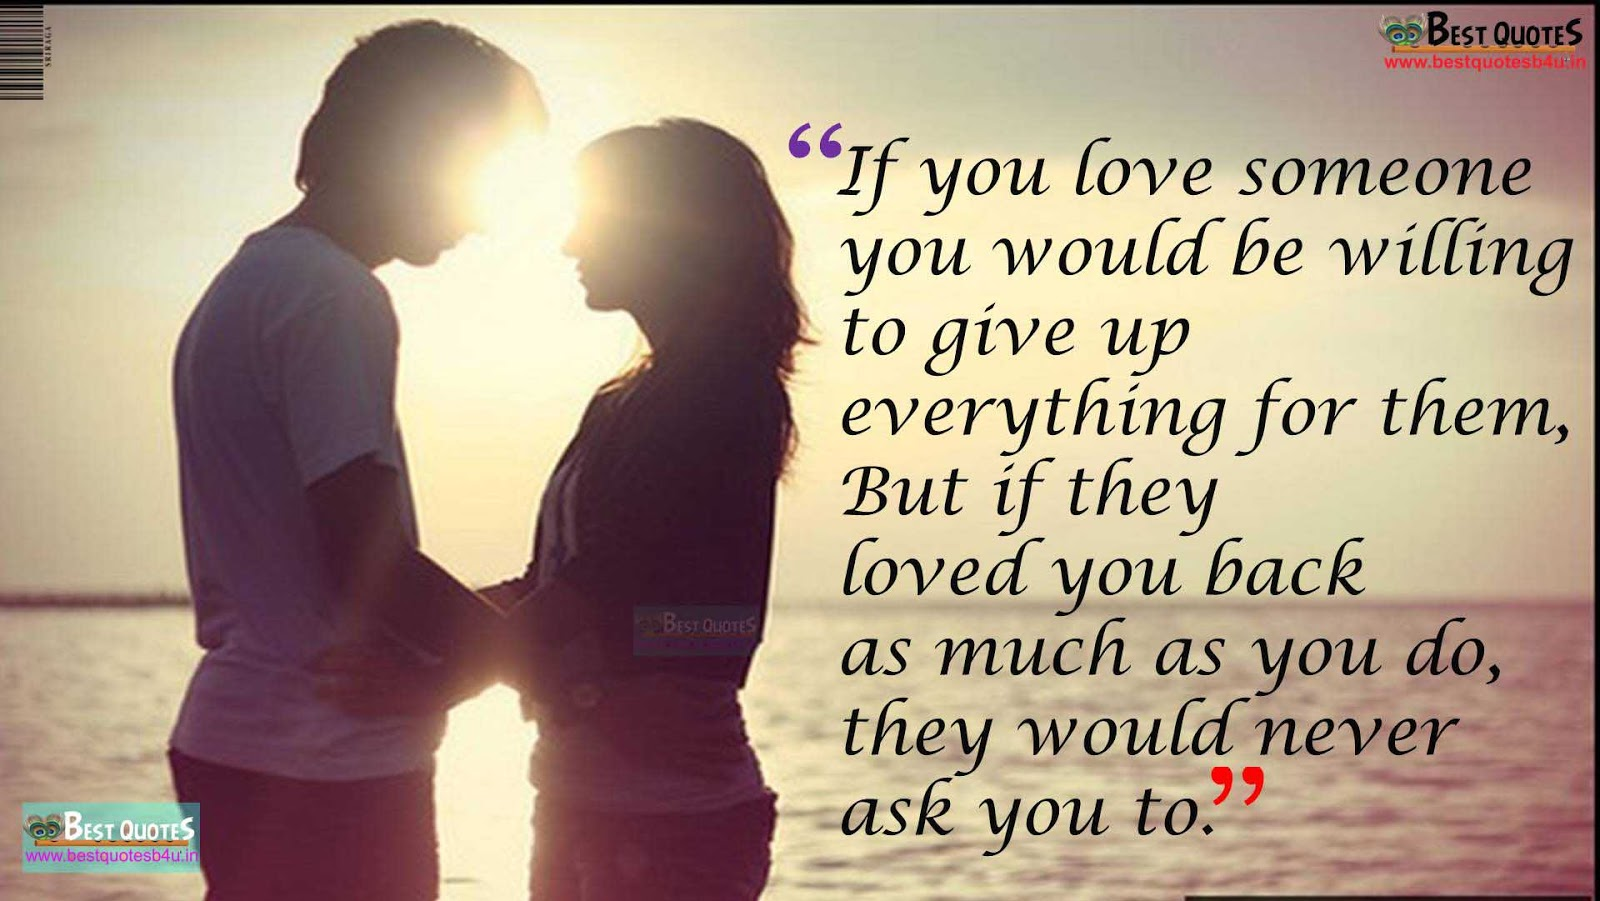 Heart Touching Love Quotes Adorable Heart Touching Love Quotes 62  Like Share Follow